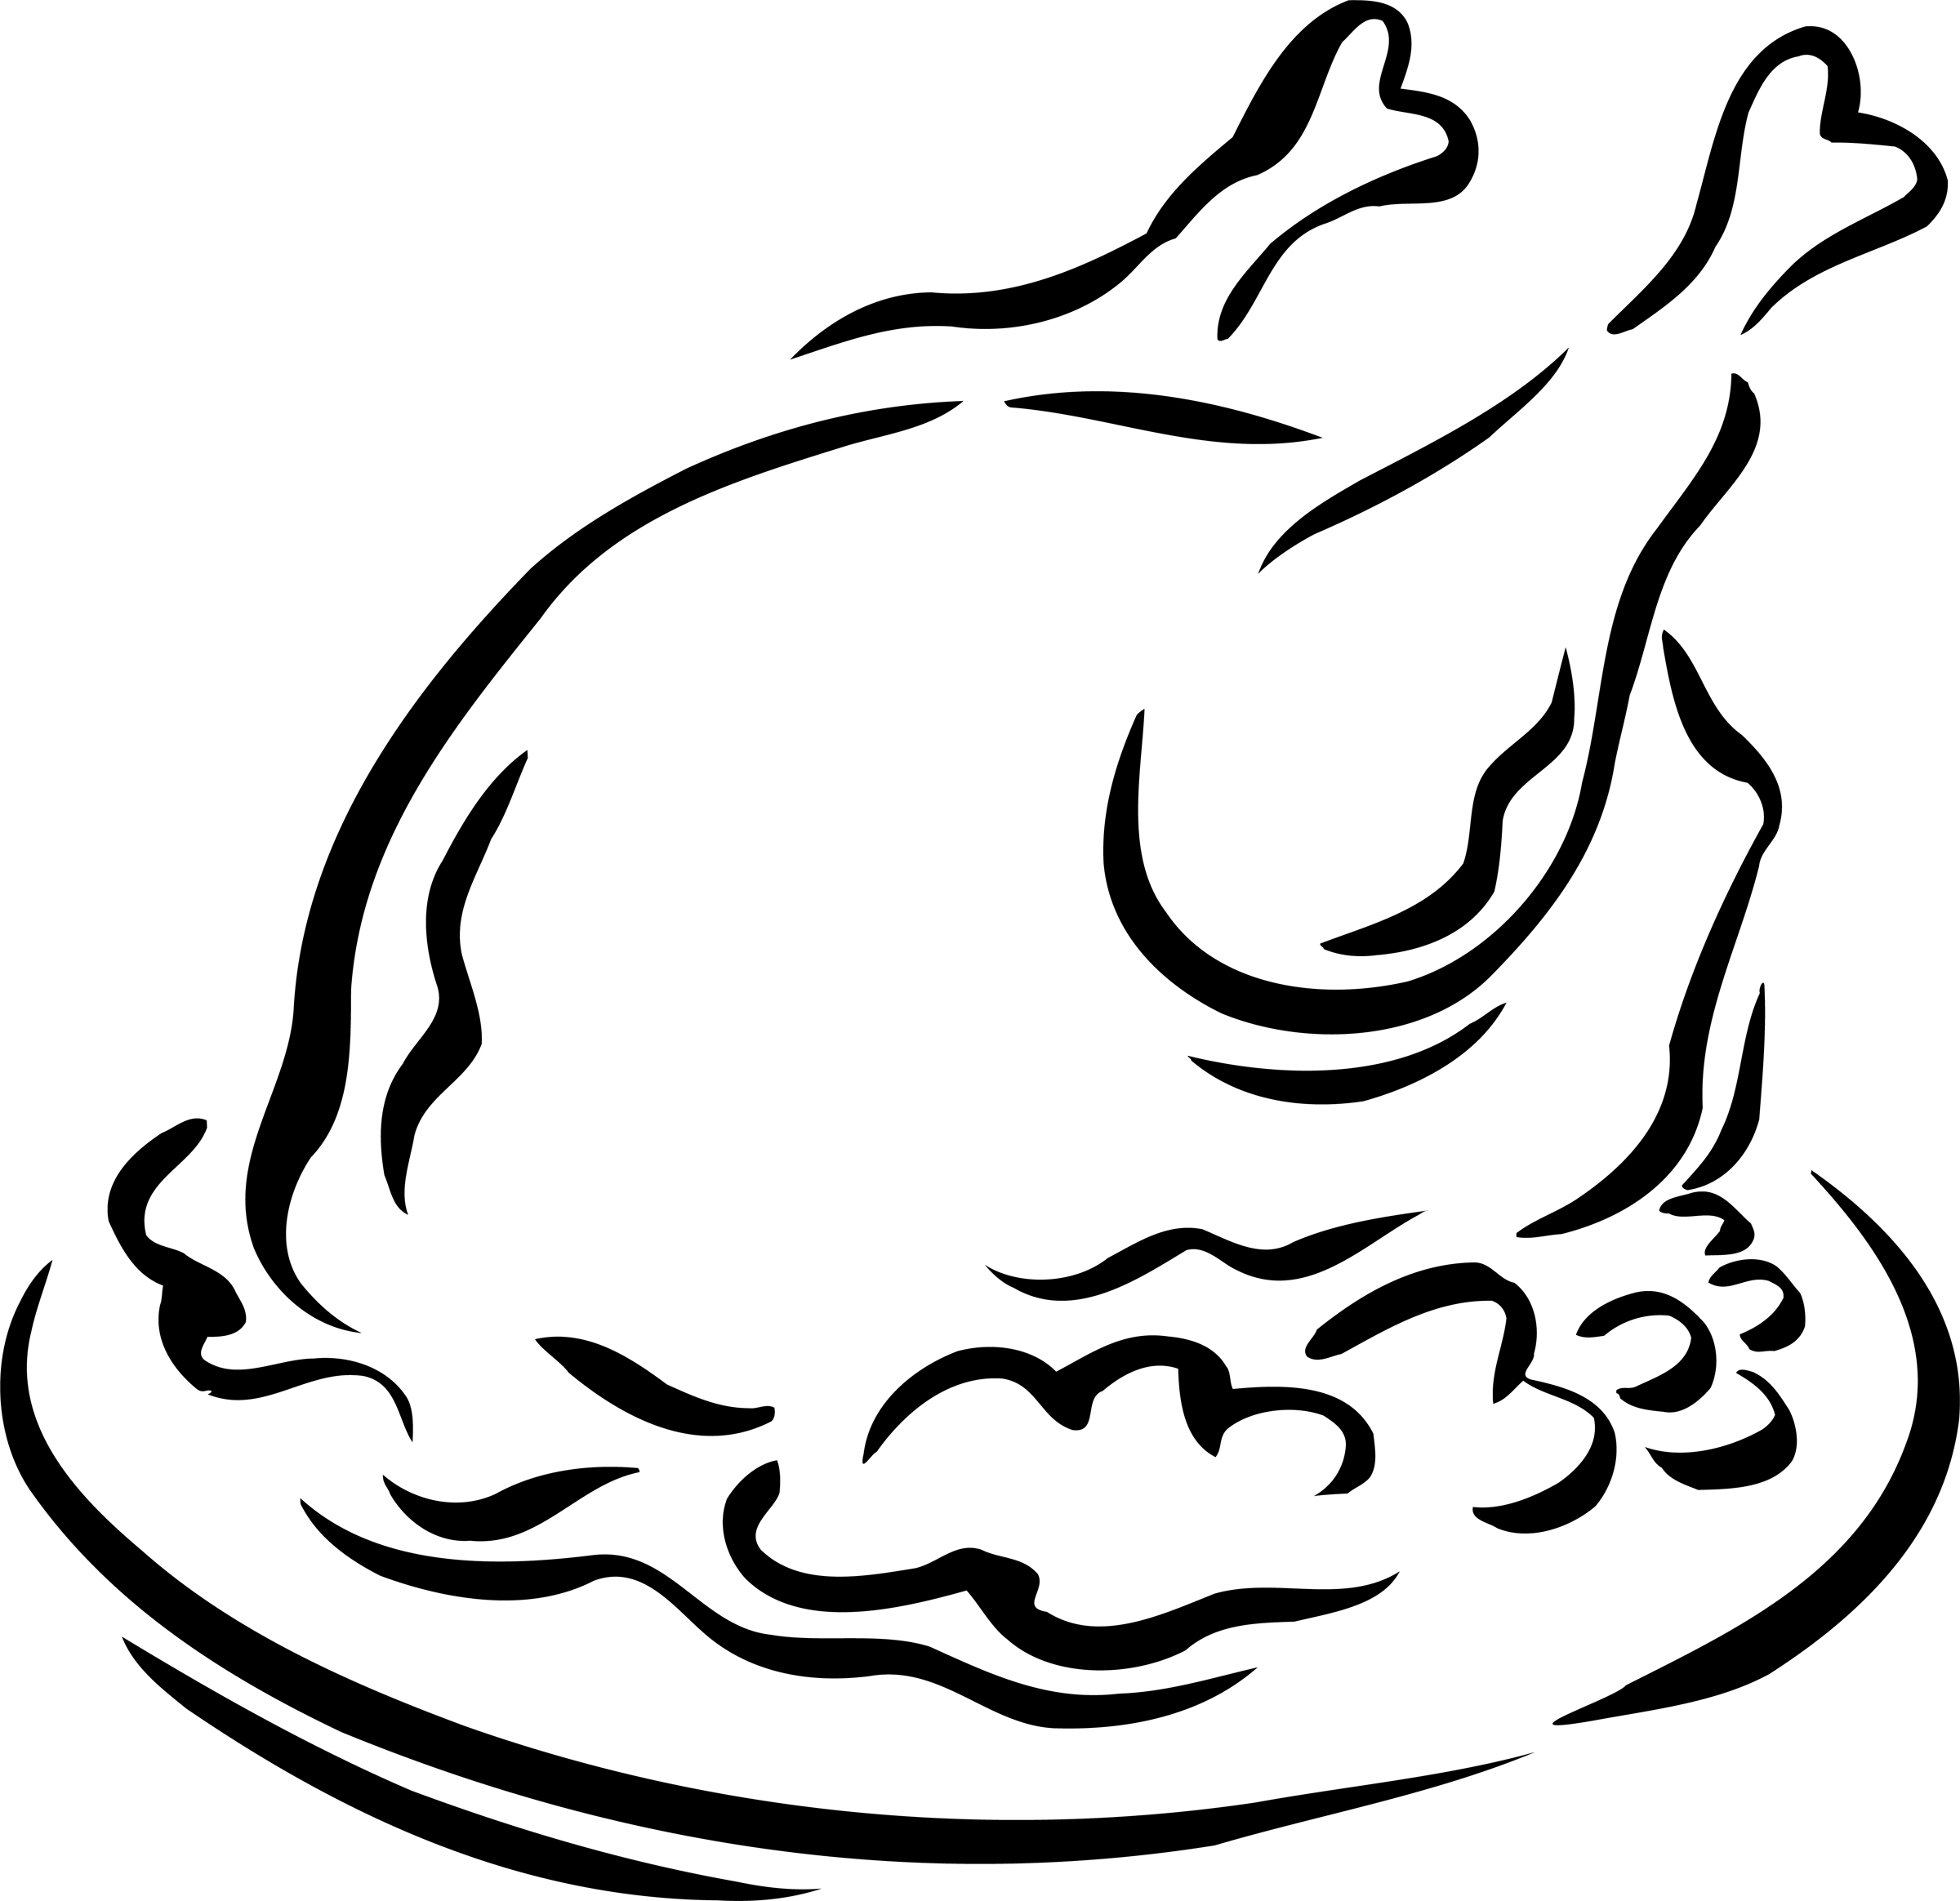 Free Cooked Turkey Clipart Black And White, Download Free.